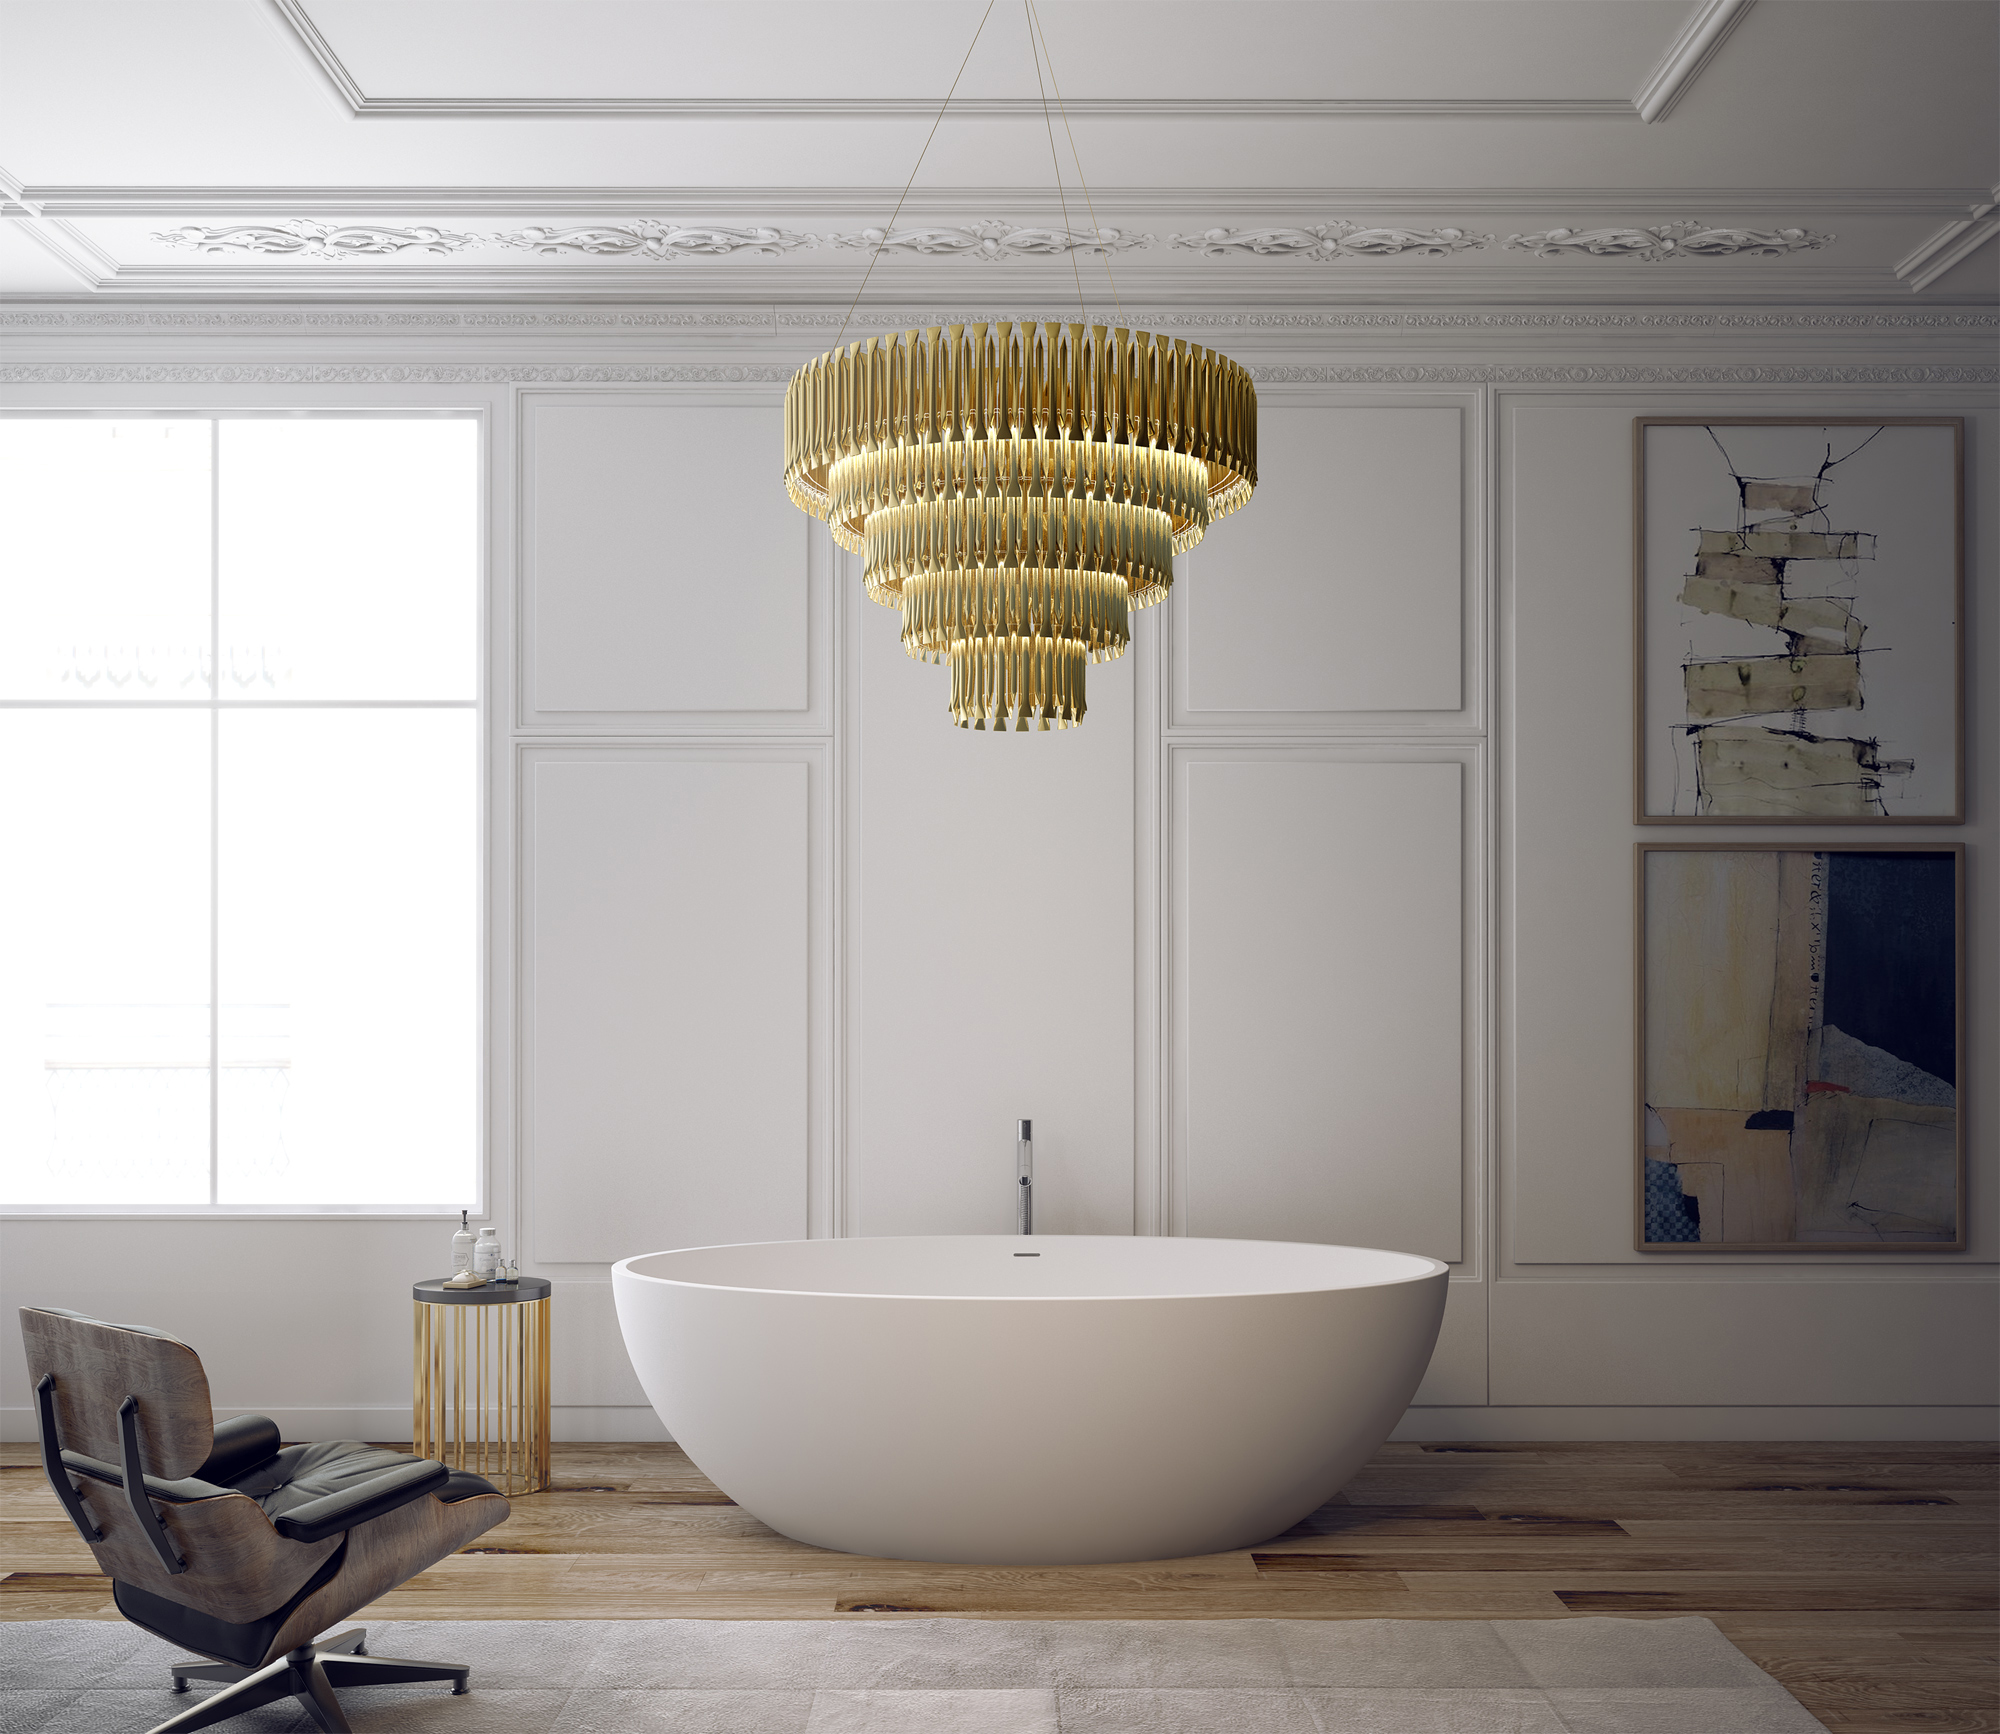 5 Bathroom Lighting Ideas You need to Use in 2017 Italy Exquisite private residence project in Italy 5 Bathroom Lighting Ideas You need to Use in 2017 Italy Exquisite private residence project in Italy 5 Bathroom Lighting Ideas You need to Use in 2017